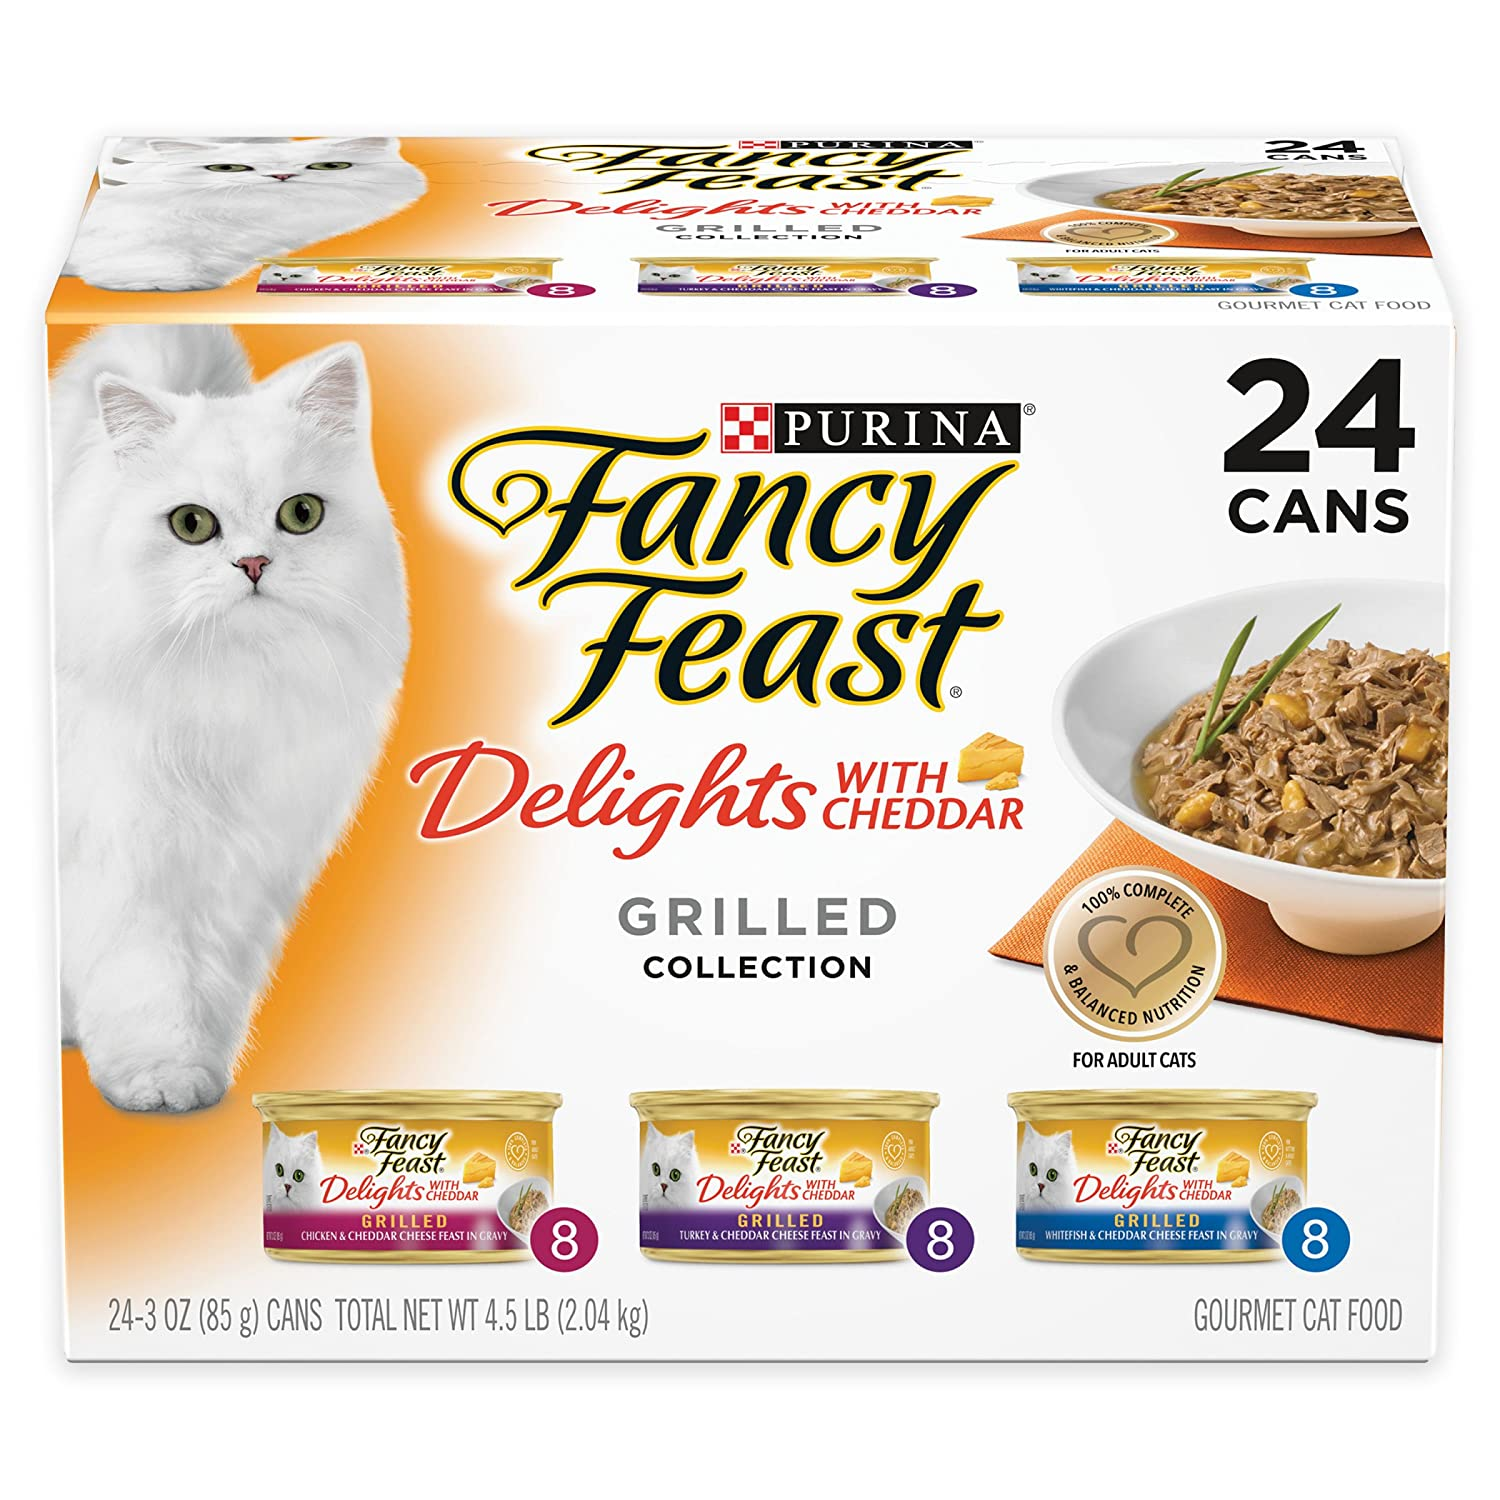 Purina Fancy Feast Delights With Cheddar Gourmet Cat Food Grilled Varieties - 24 CT NTP-964